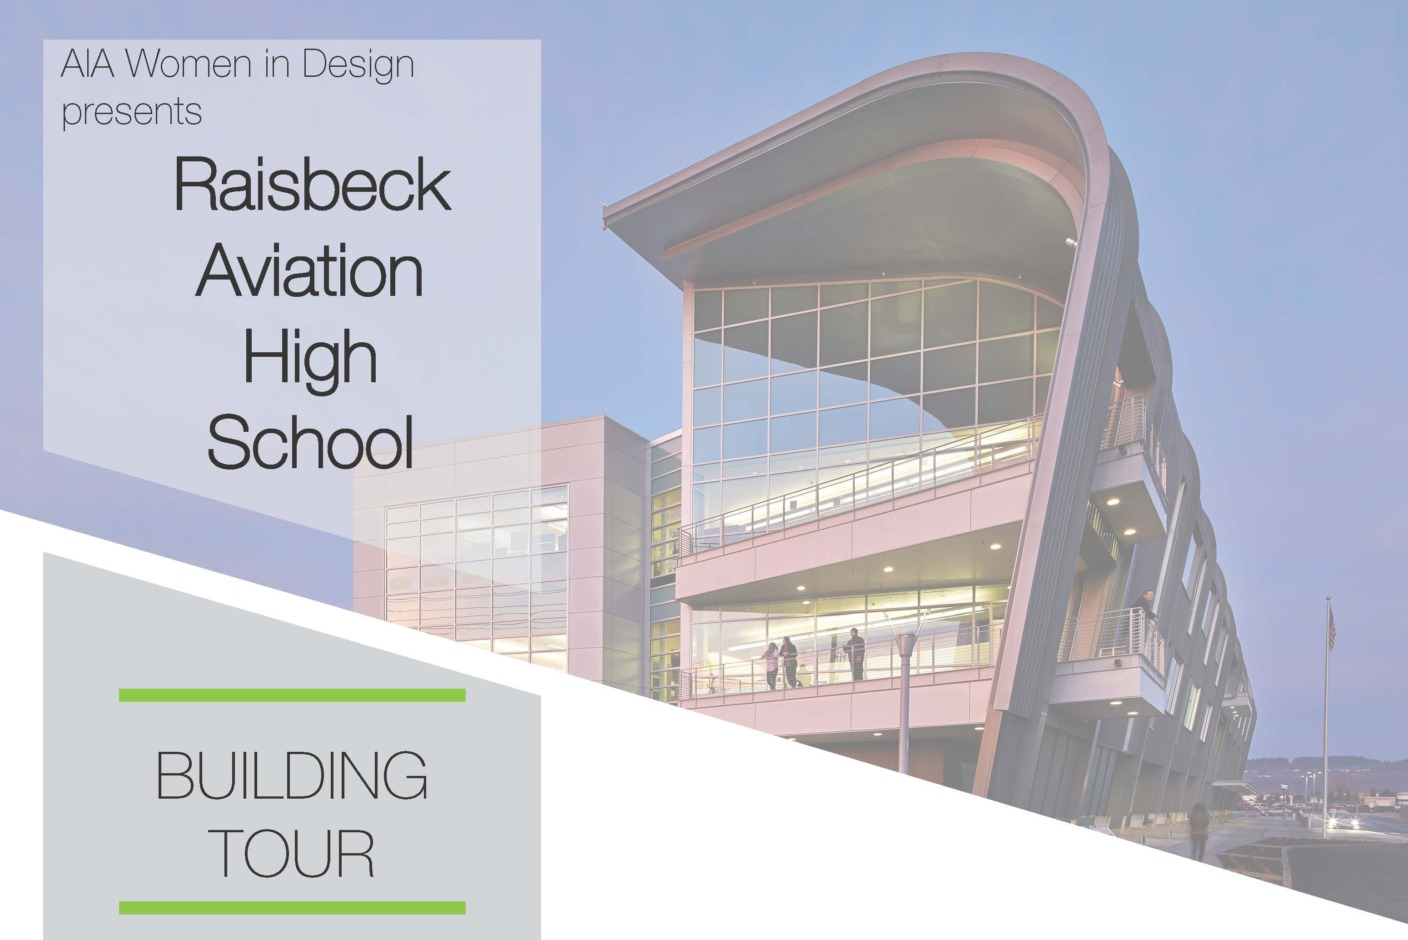 Join AIA Seattle's Women In Design committee to tour Raisbeck Aviation High School, where students receive hand-on, project-based learning centered on the aviation industry.